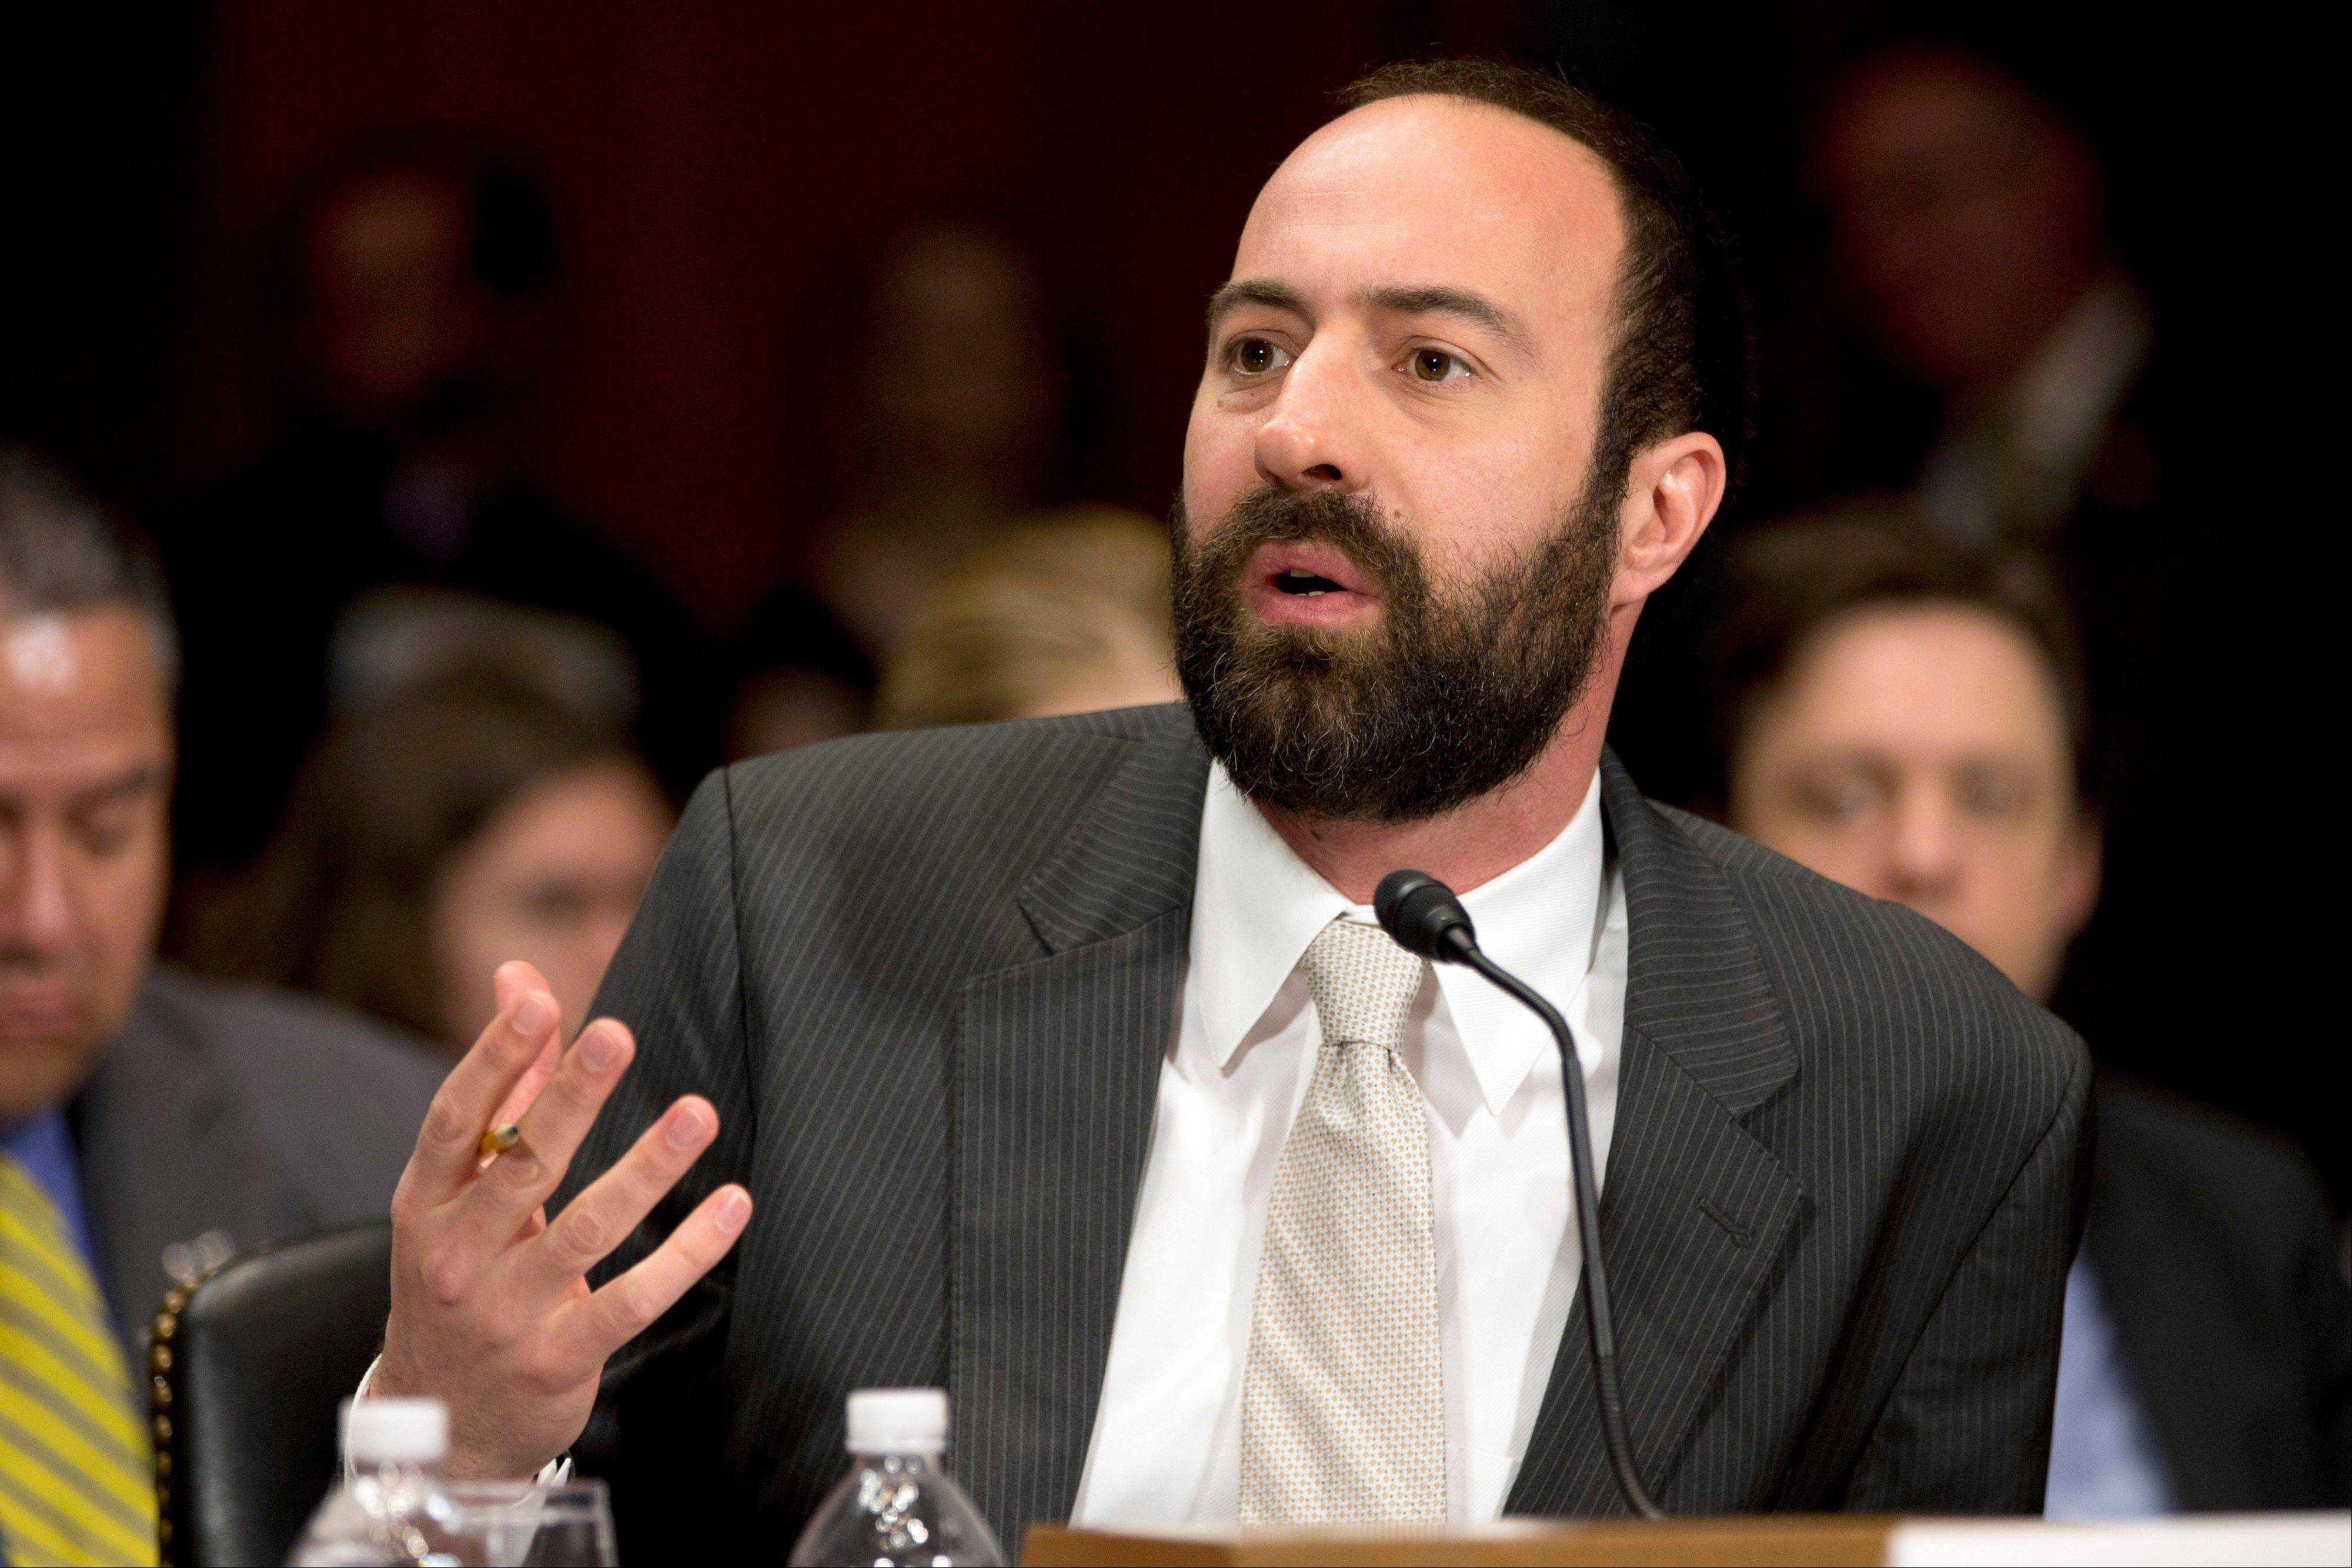 Ryan Calo, assistant professor at the University of Washington School of Law, testifies on Capitol Hill before the Senate Judiciary Committee hearing to examine the future of drones in America, focusing on law enforcement and privacy considerations.